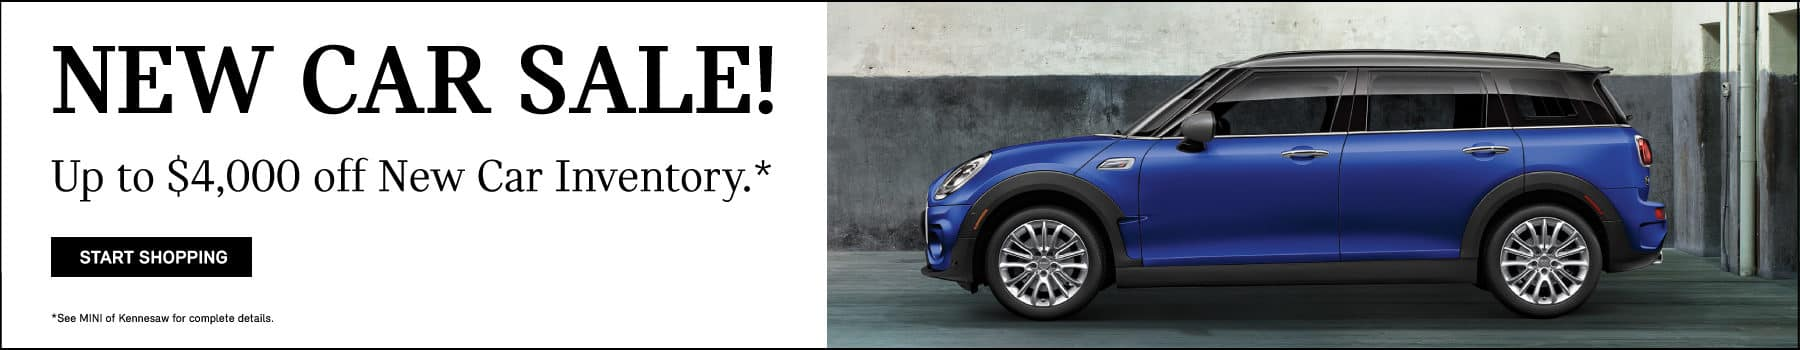 New car sale! Up to $5,000 off New car inventory. Start shopping button. See MINI of kennesaw for complete details. Starlight blue MINI Cooper S Countryman parked inside warehouse.